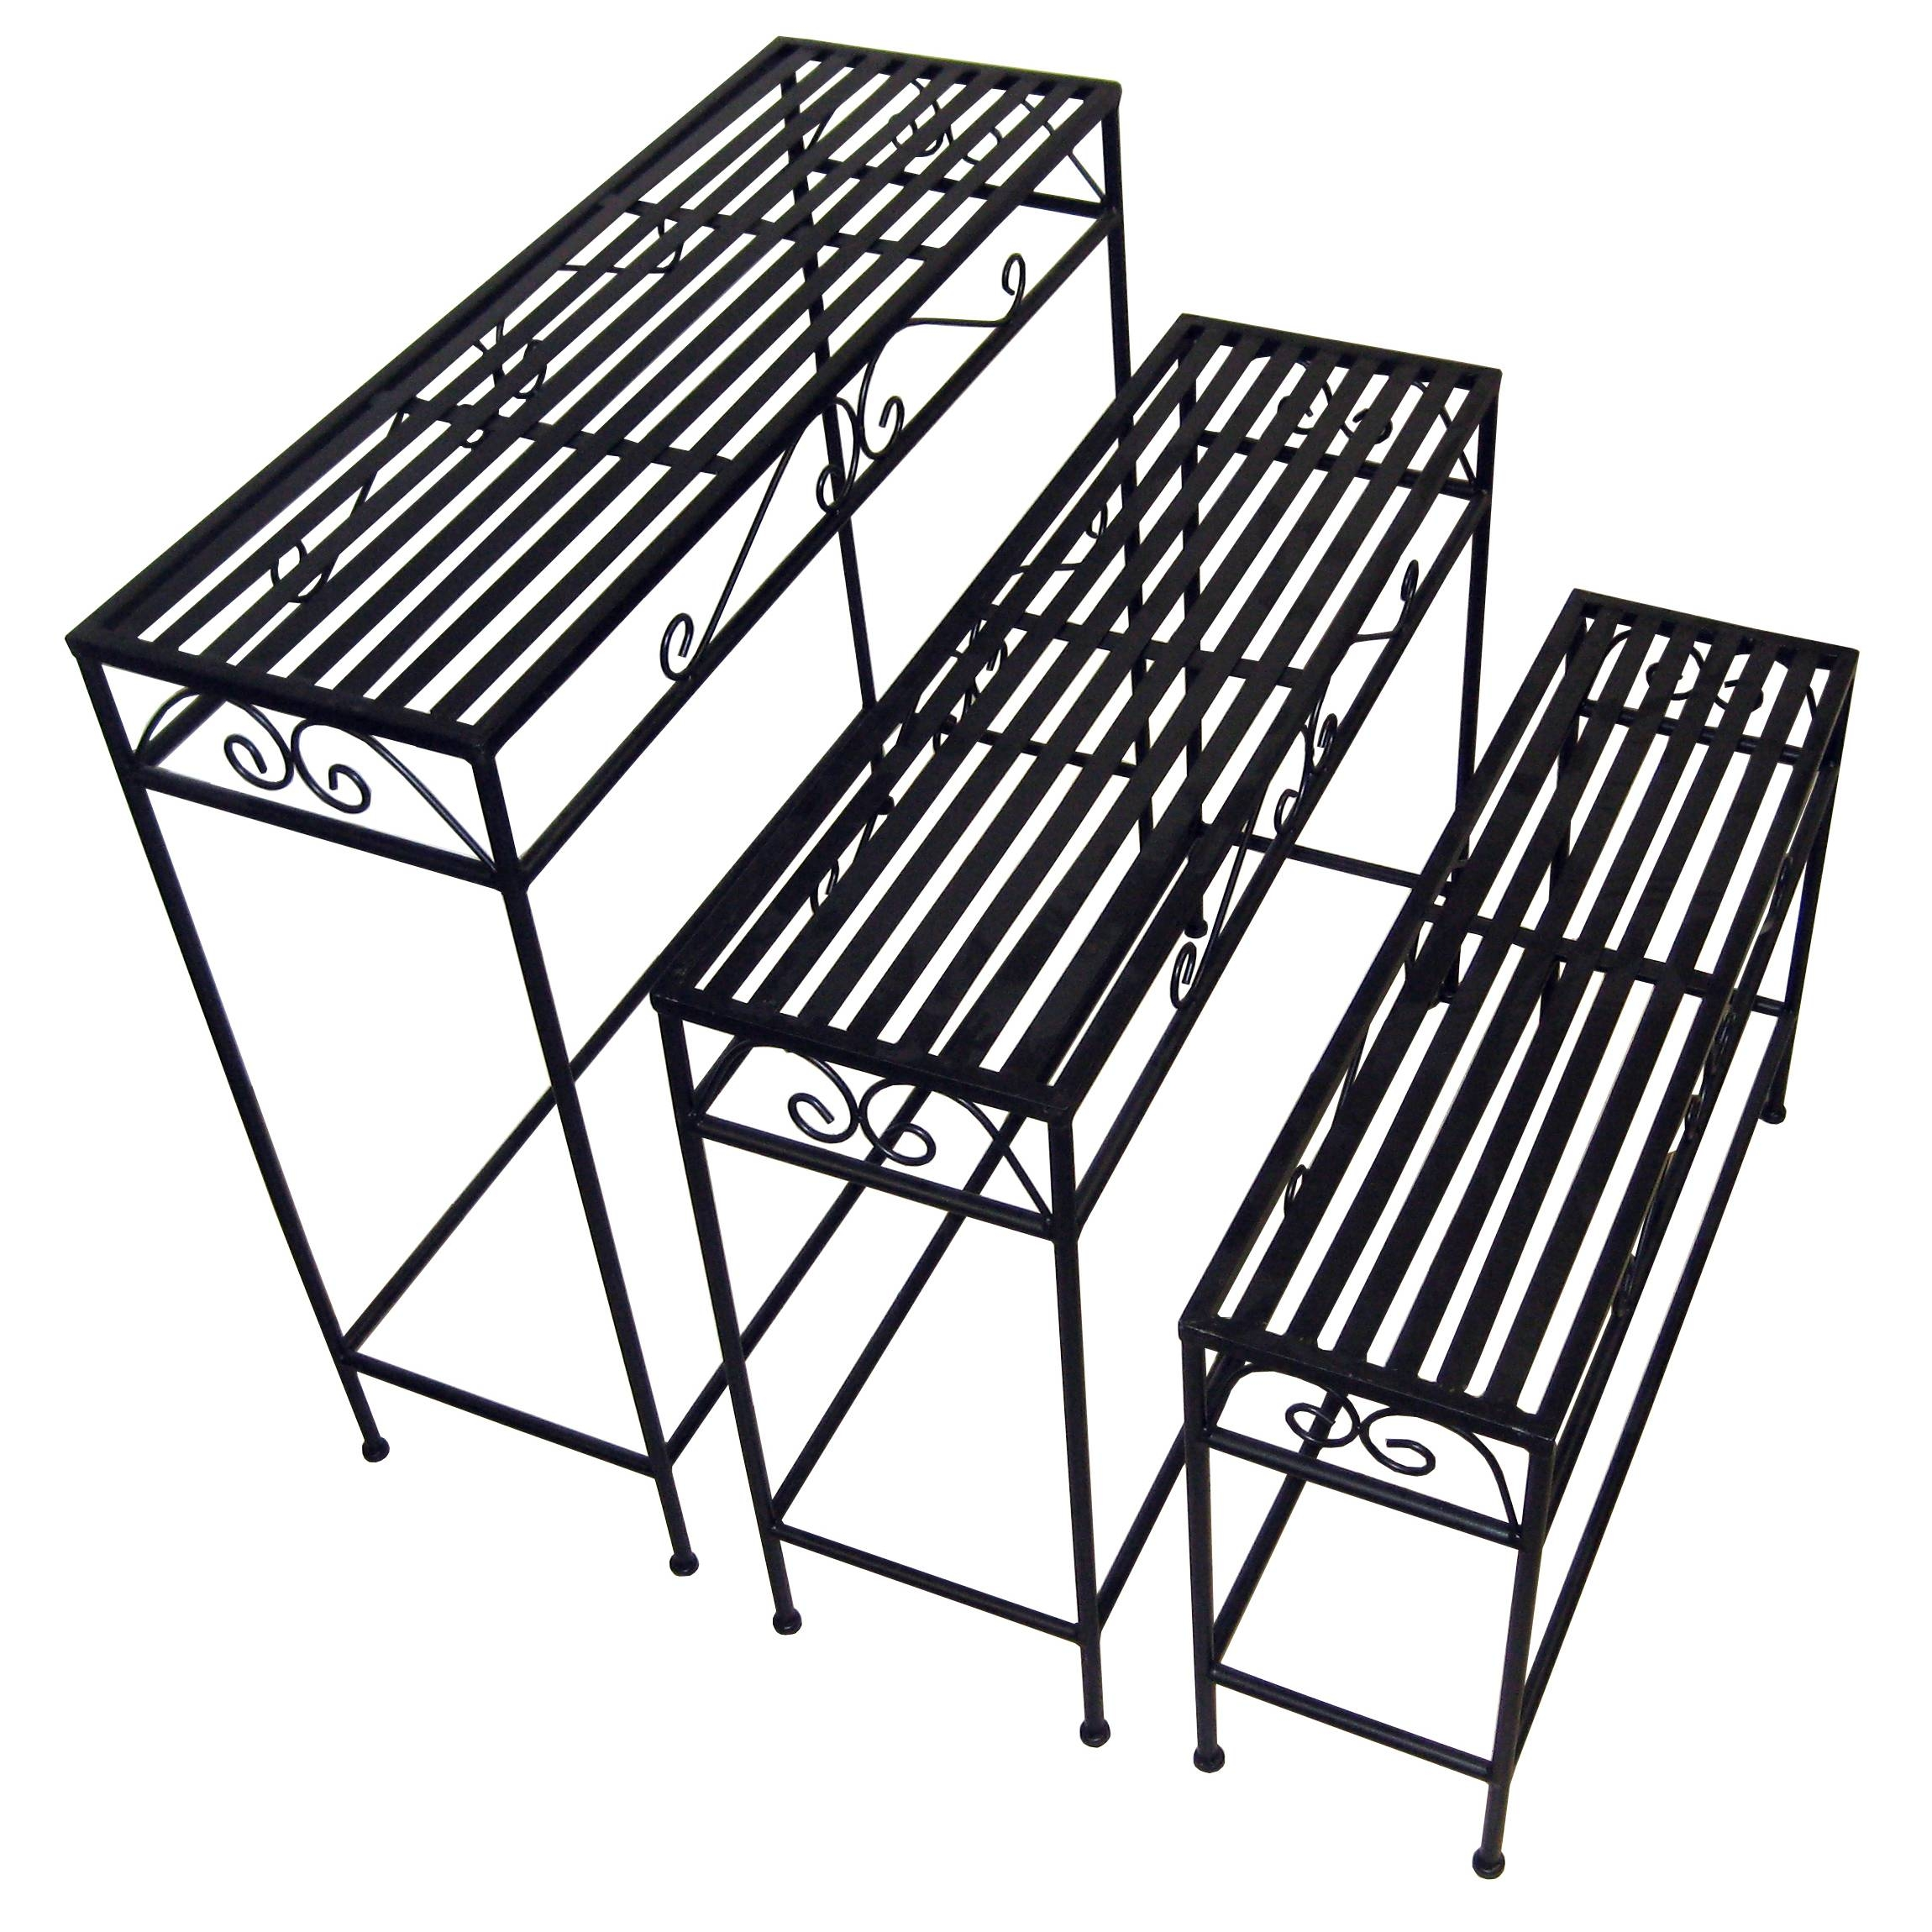 Nesting Tables For Patio | Mpfmpf Almirah, Beds, Wardrobes And inside Patio Sofa Tables (Image 16 of 30)